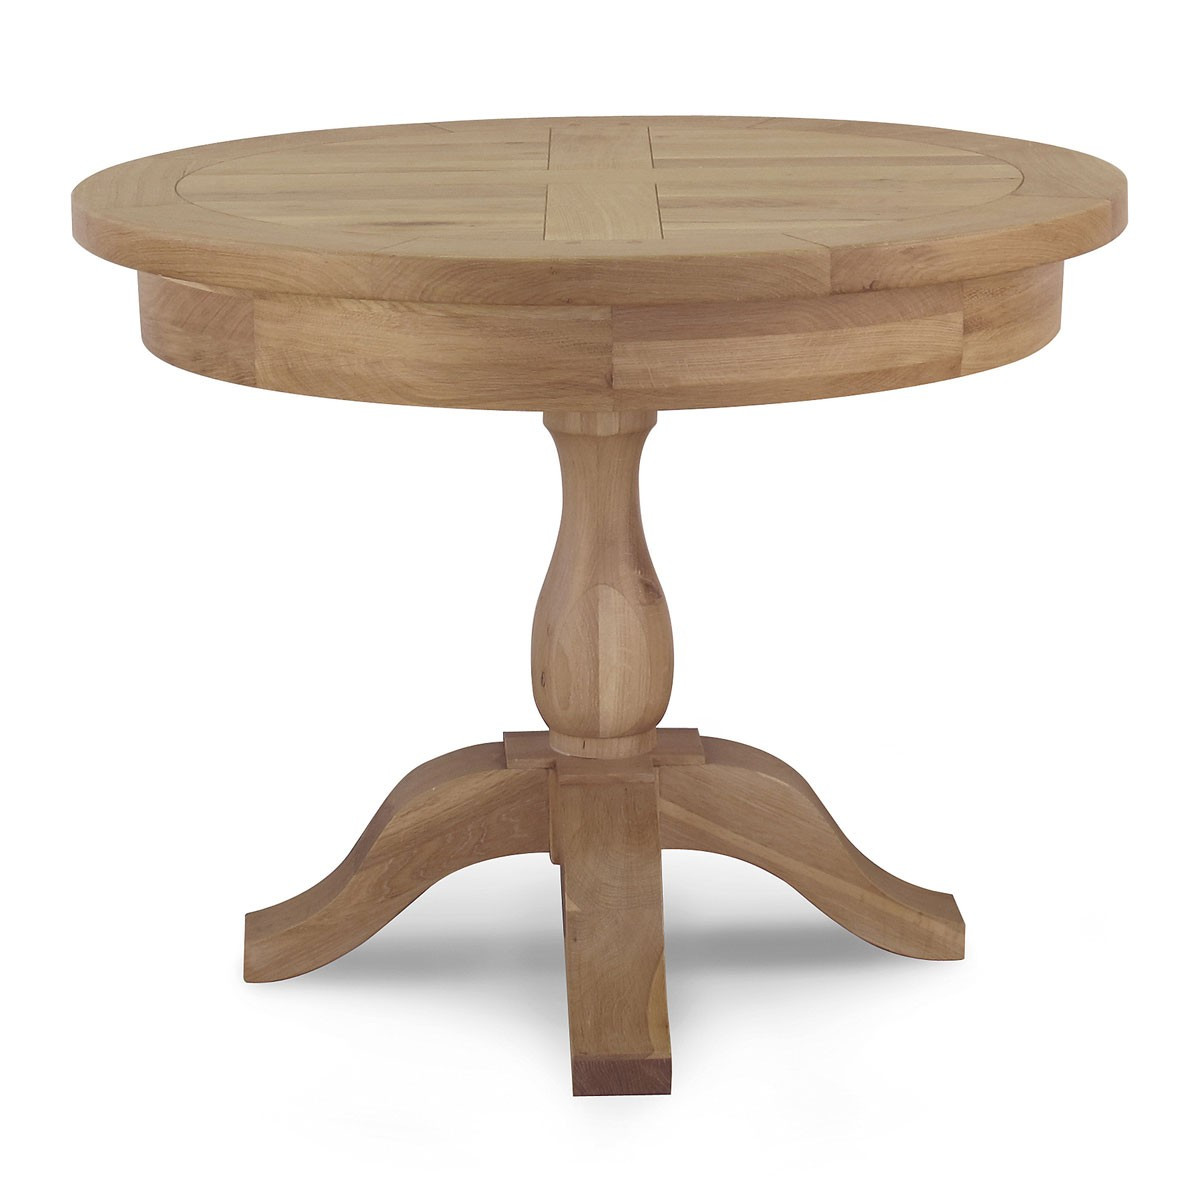 Best ideas about Round Extendable Dining Table . Save or Pin Tuscany Contemporary Extendable Round Dining Table Now.